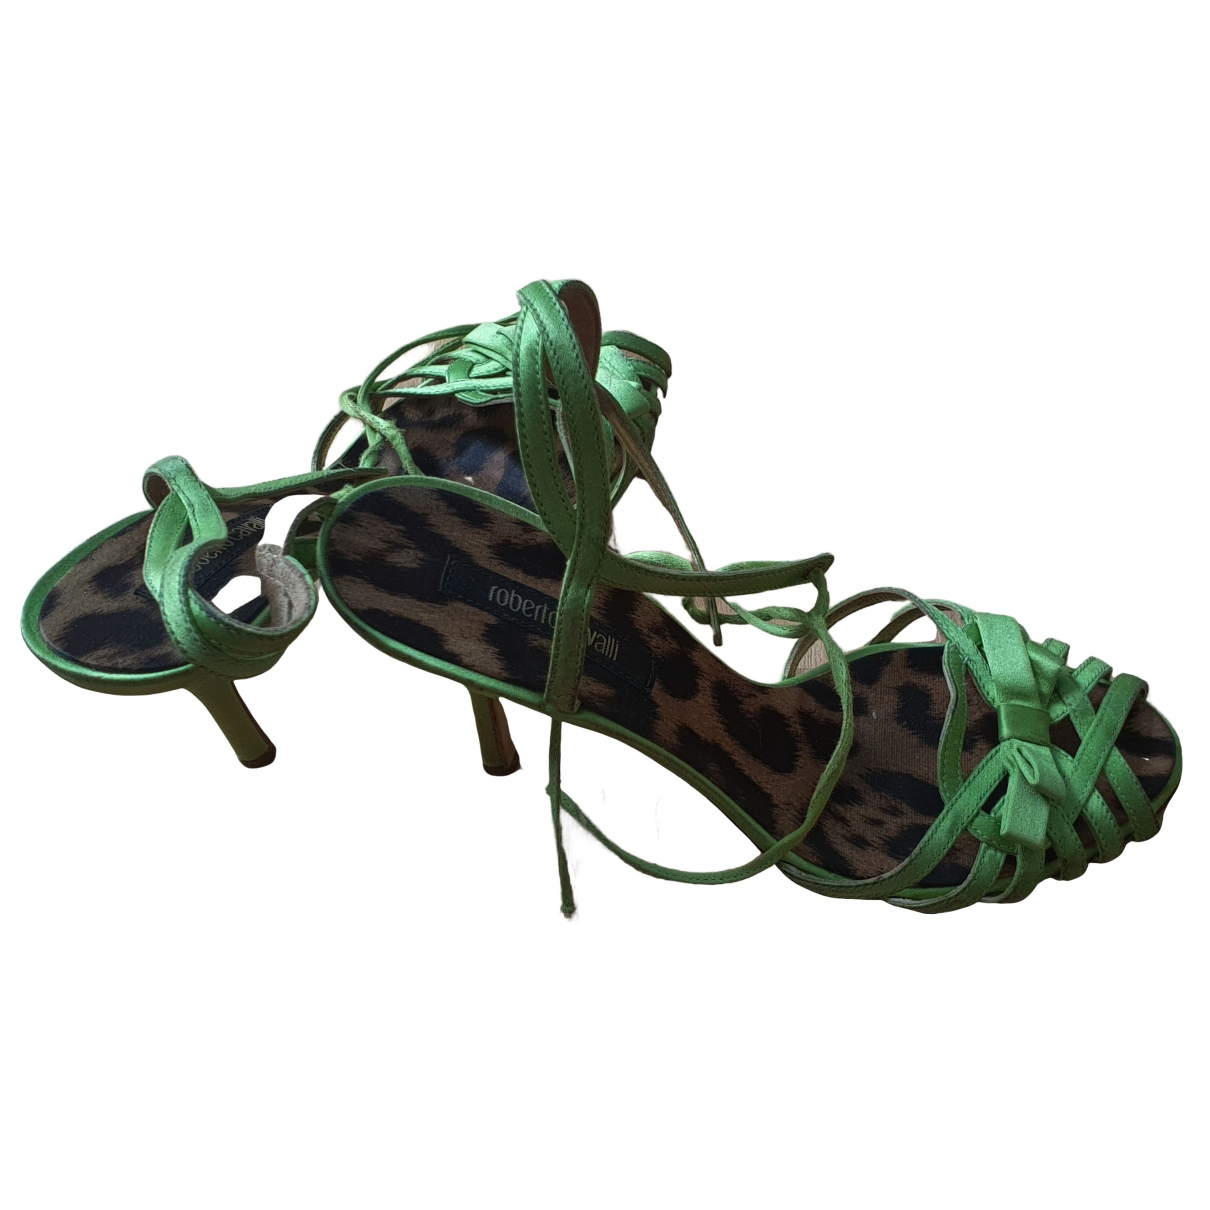 Roberto Cavalli \N Green Leather Sandals for Women 38 EU